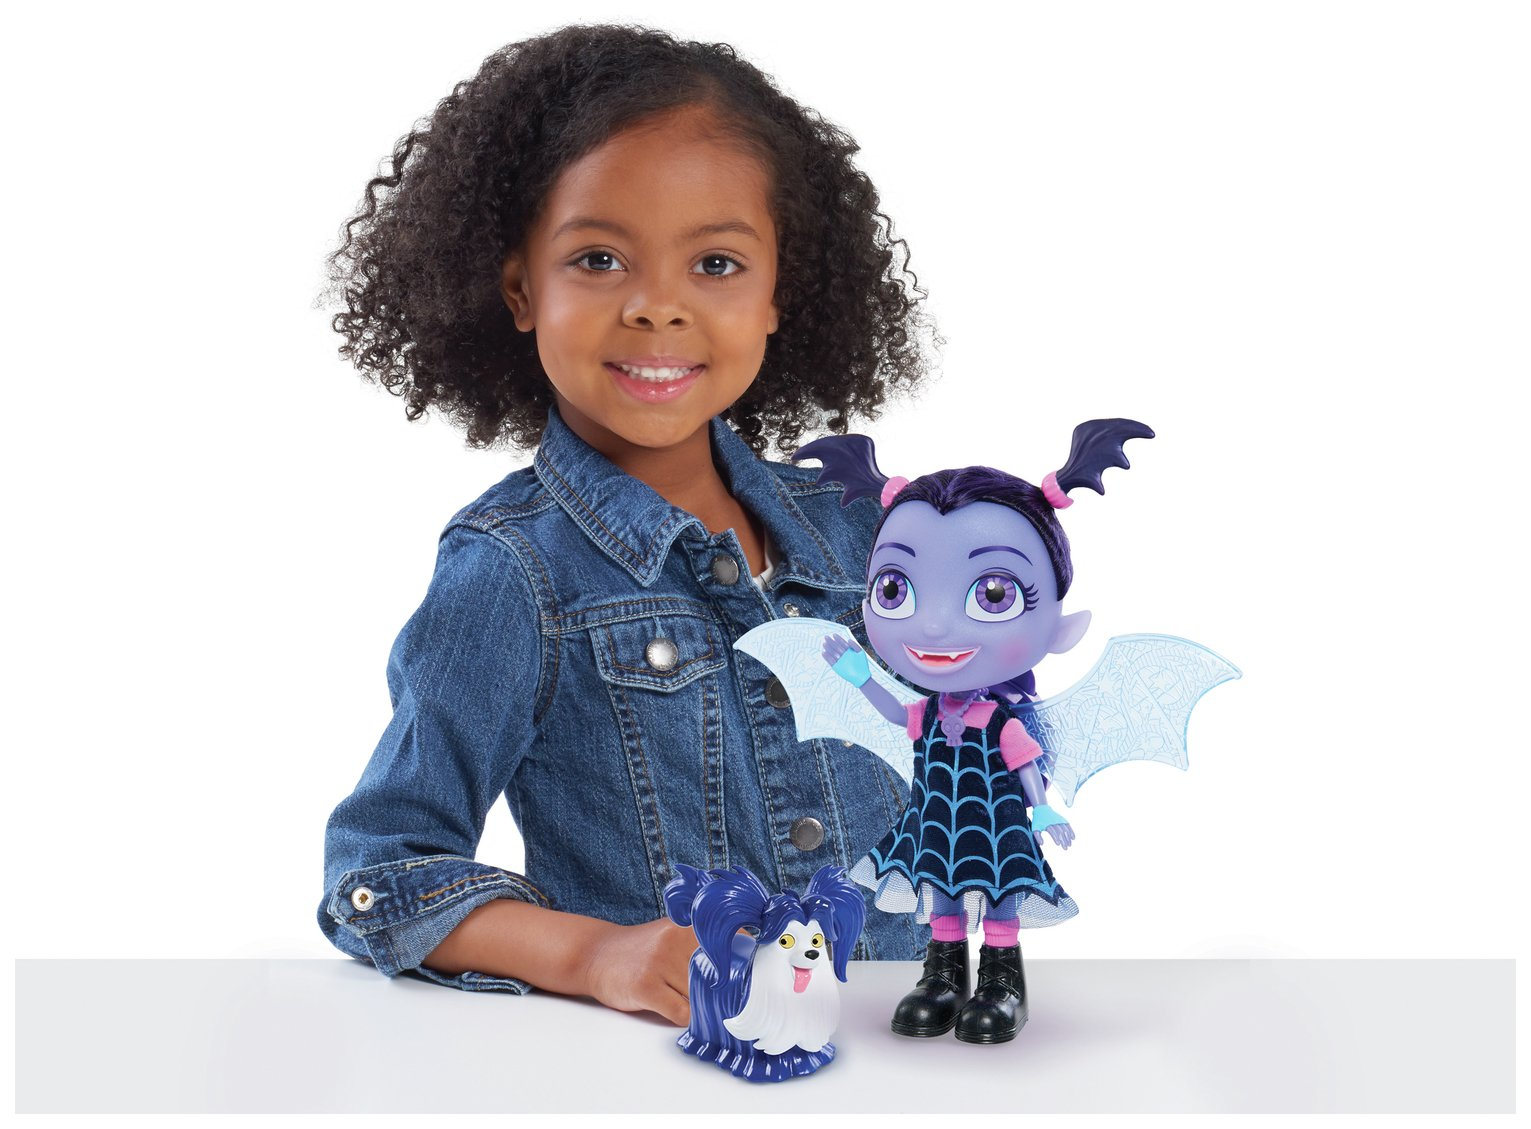 Vampirina Talking Vee & Friends Doll